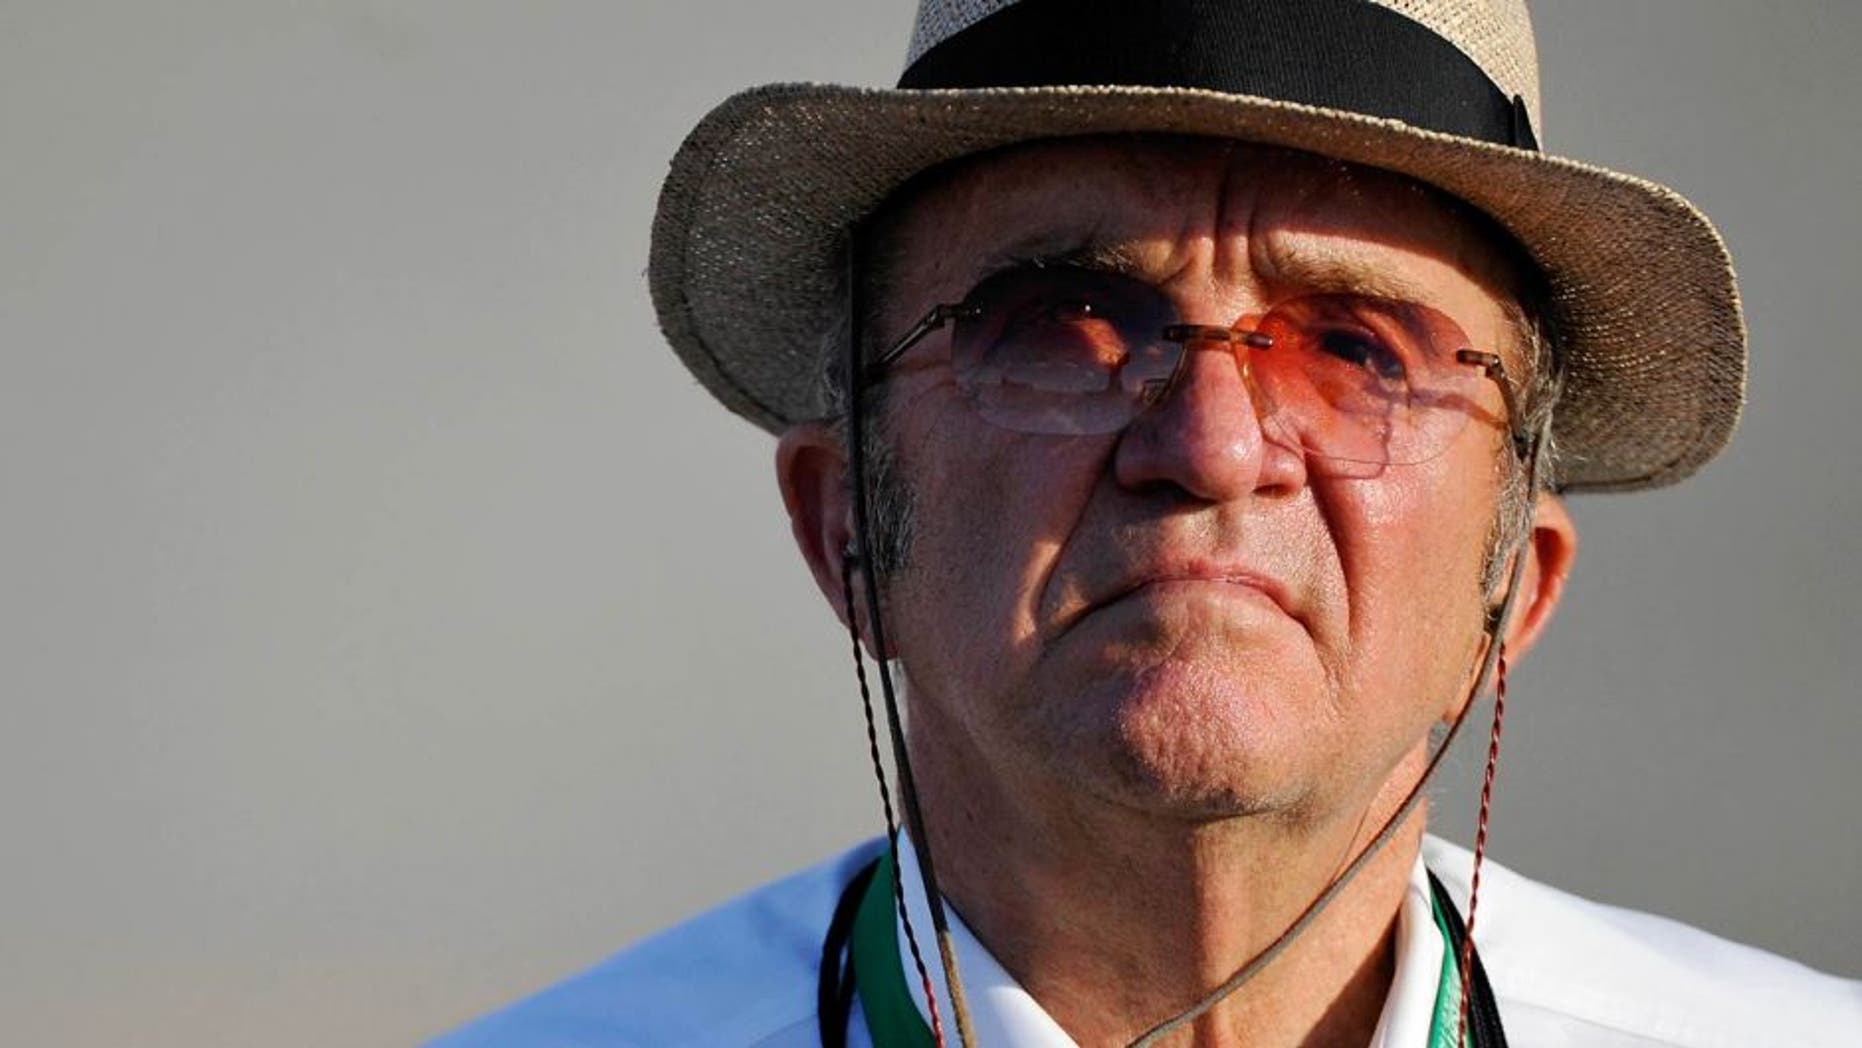 RICHMOND, VA - SEPTEMBER 06: Team owner Jack Roush looks on from the grid during qualifying for the NASCAR Sprint Cup Series Federated Auto Parts 400 at Richmond International Raceway on September 6, 2013 in Richmond, Virginia. (Photo by Rainier Ehrhardt/NASCAR via Getty Images)